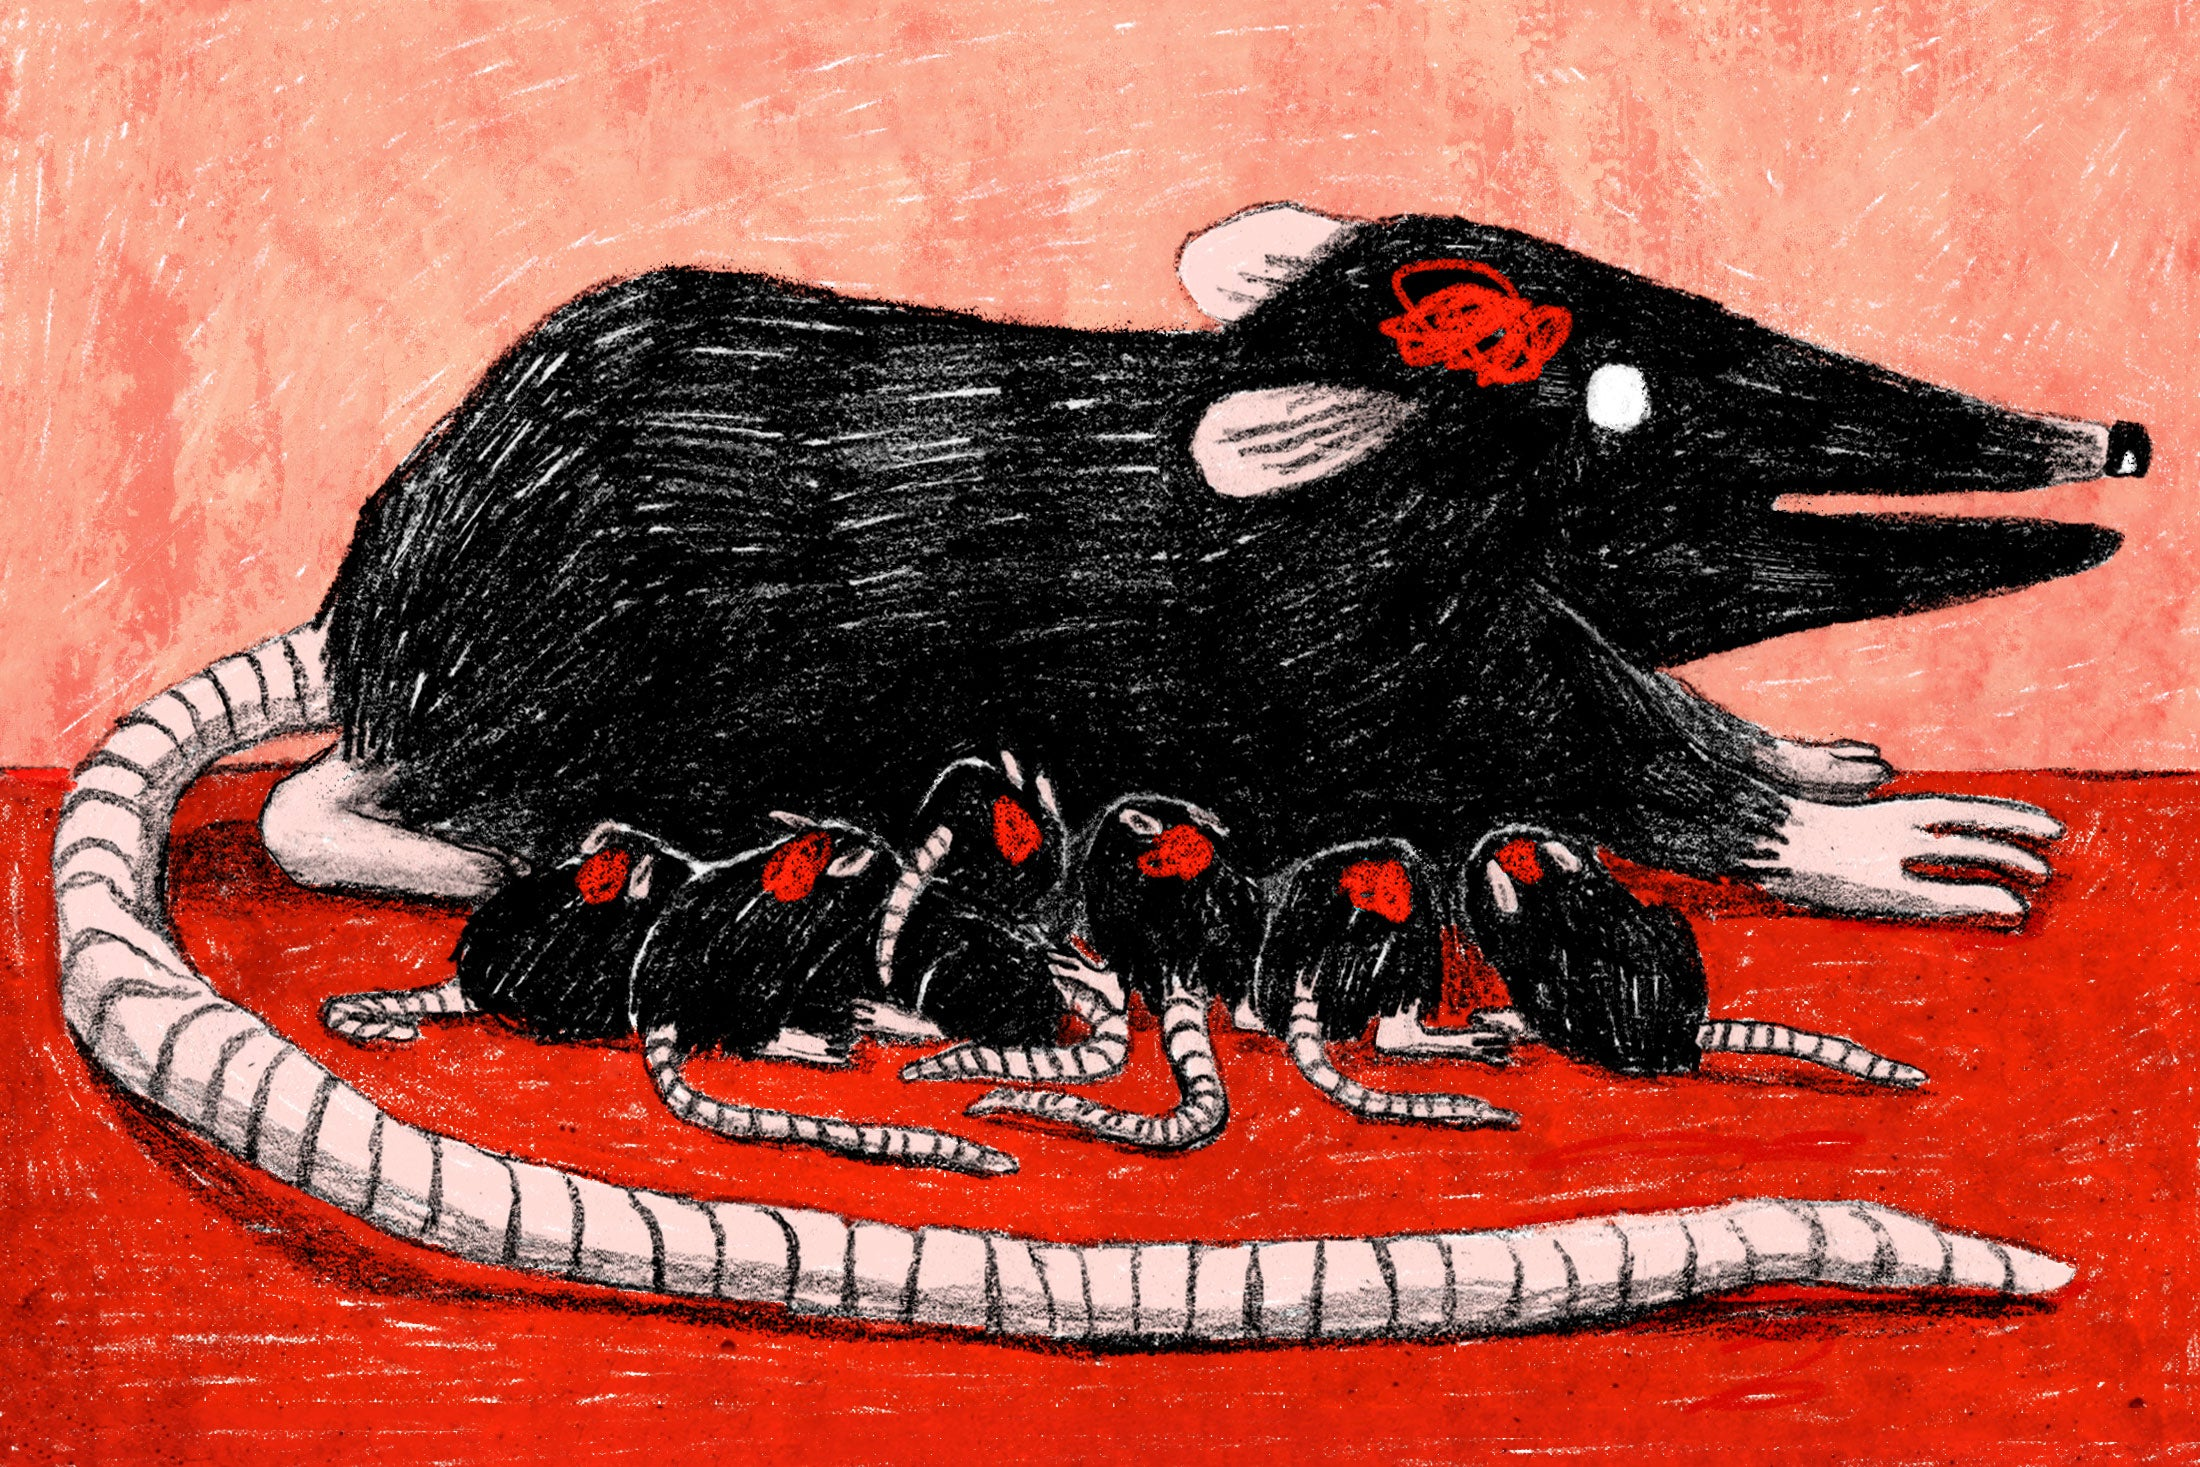 Illustration: Baby rats nurse from their mother, while a squiggle in the approximate location of their brains suggests that knowledge is passed down through their genetic line.